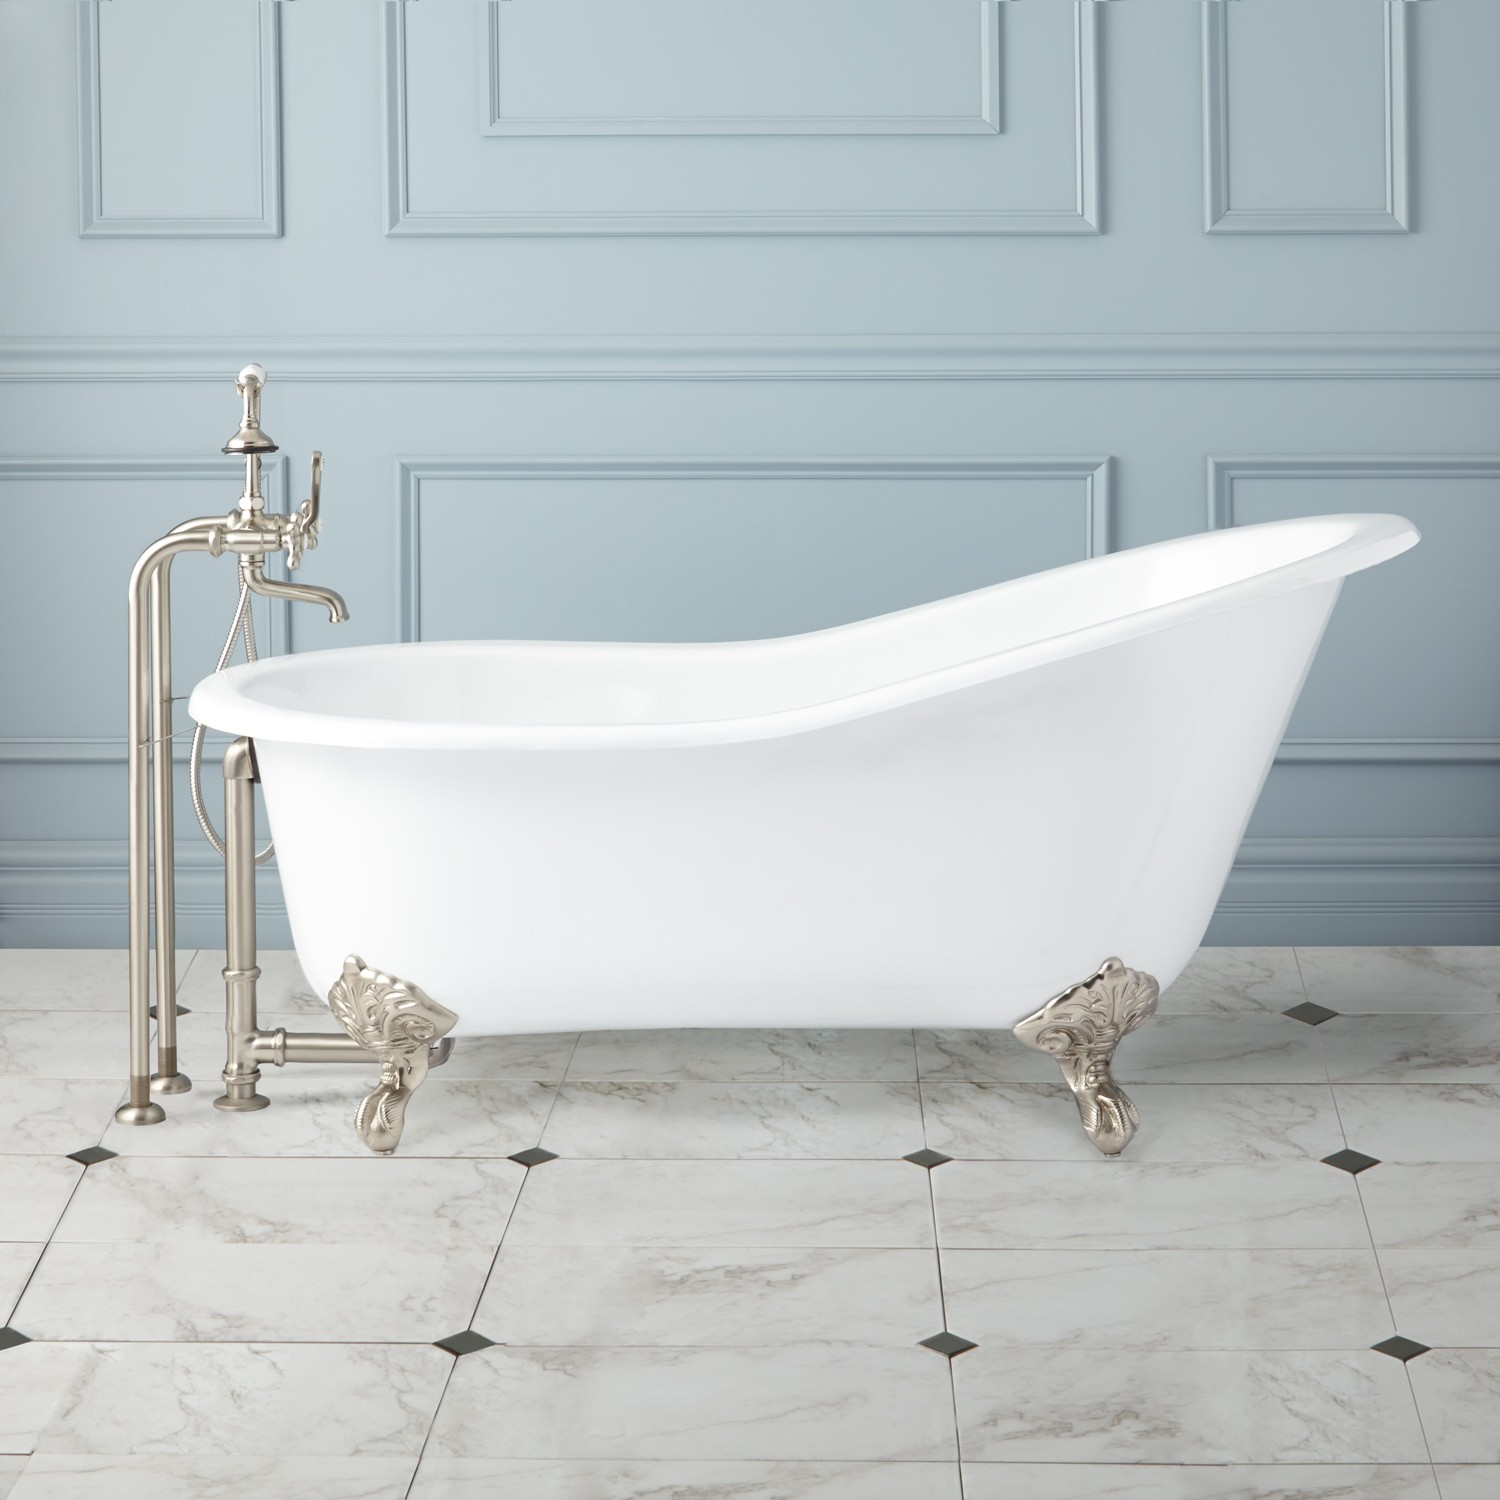 Enchanting How A Cast Iron Tub Can Improve Your Appearance Cast Iron Tub Paint Cast Iron Tub Value houzz-02 Cast Iron Tub